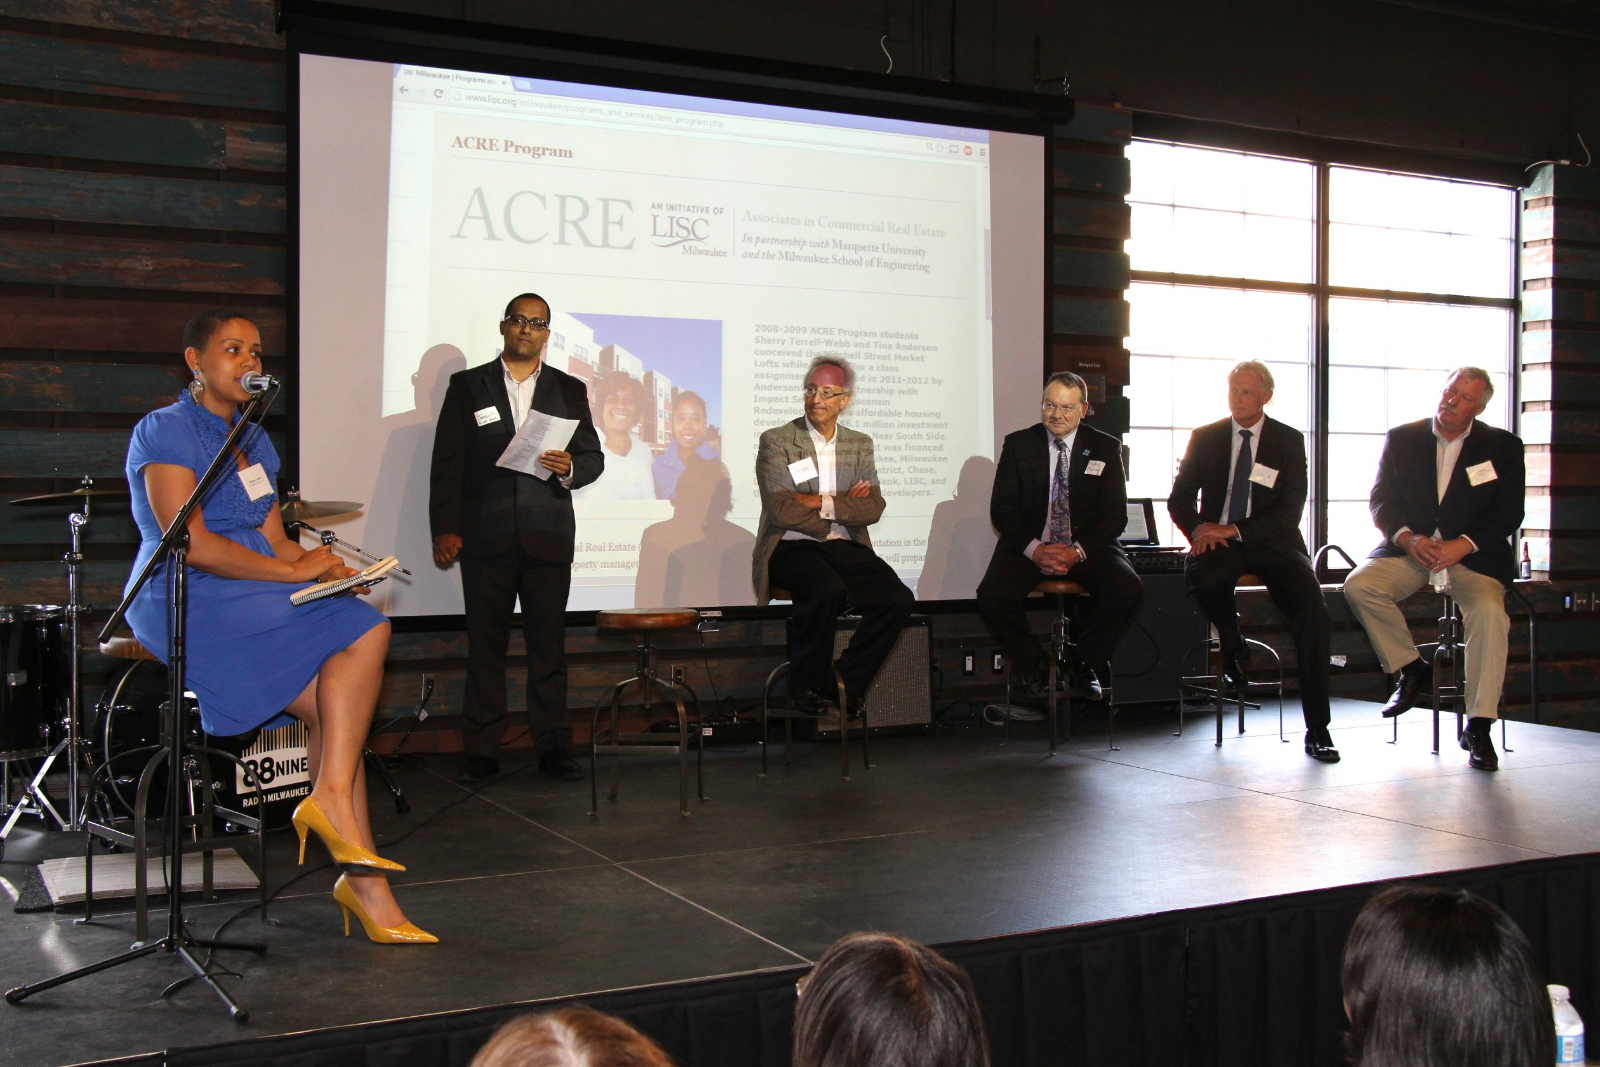 All of the speakers at ACRE event.